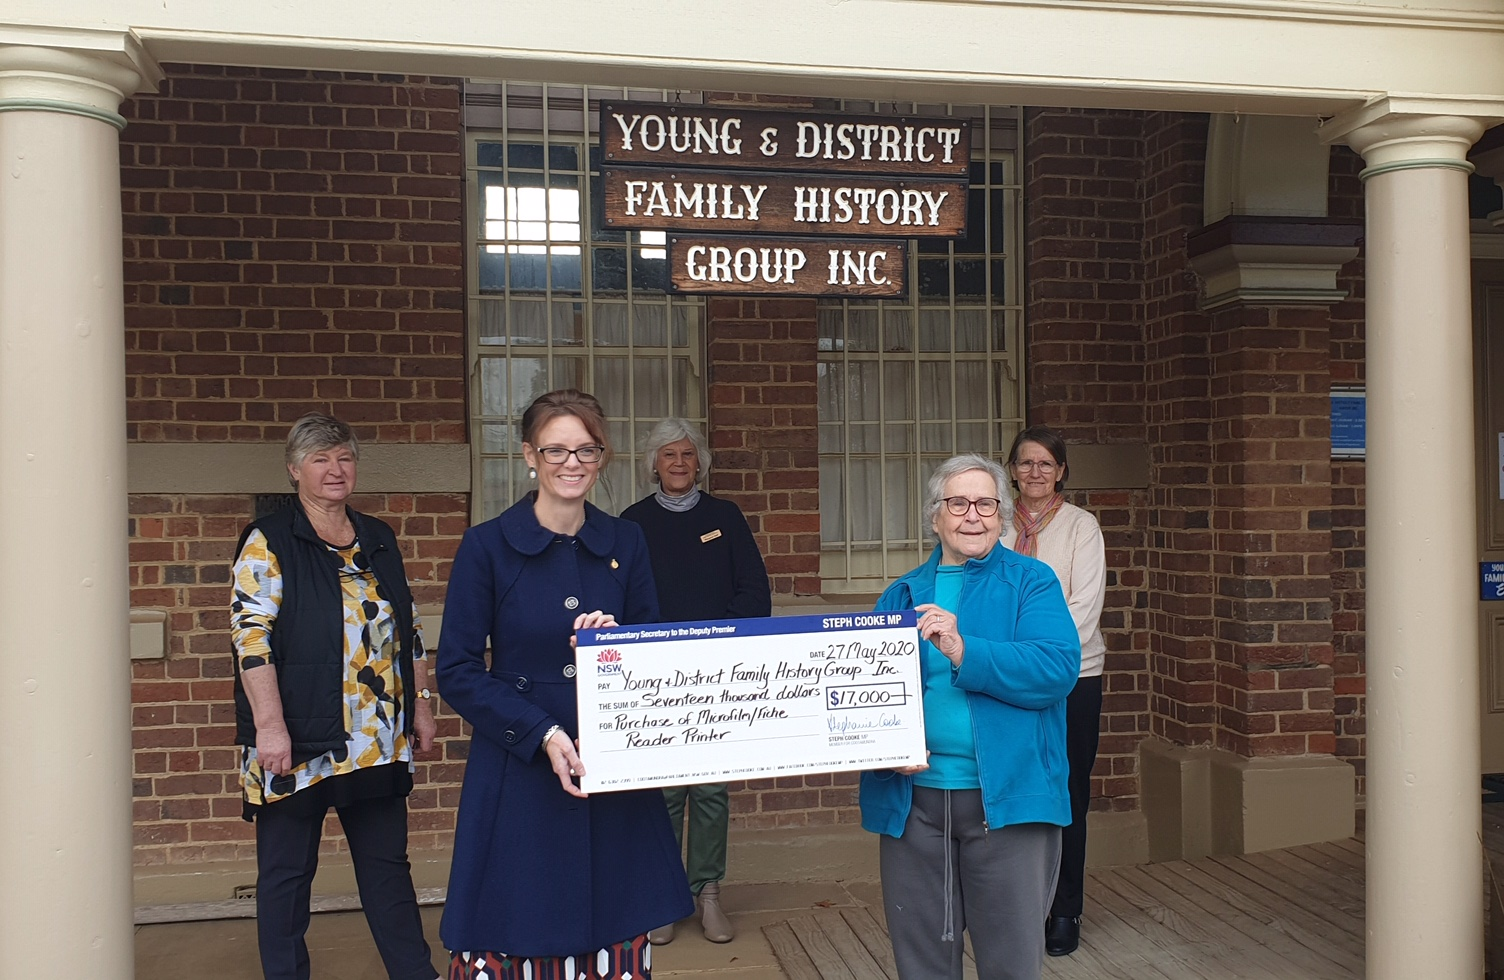 Kay McDonald, Steph Cooke MP, Margaret Hall, Carmel Price and Mary Murray hold a large cheque and stand under the sign for the Young & District Family History Group Inc.